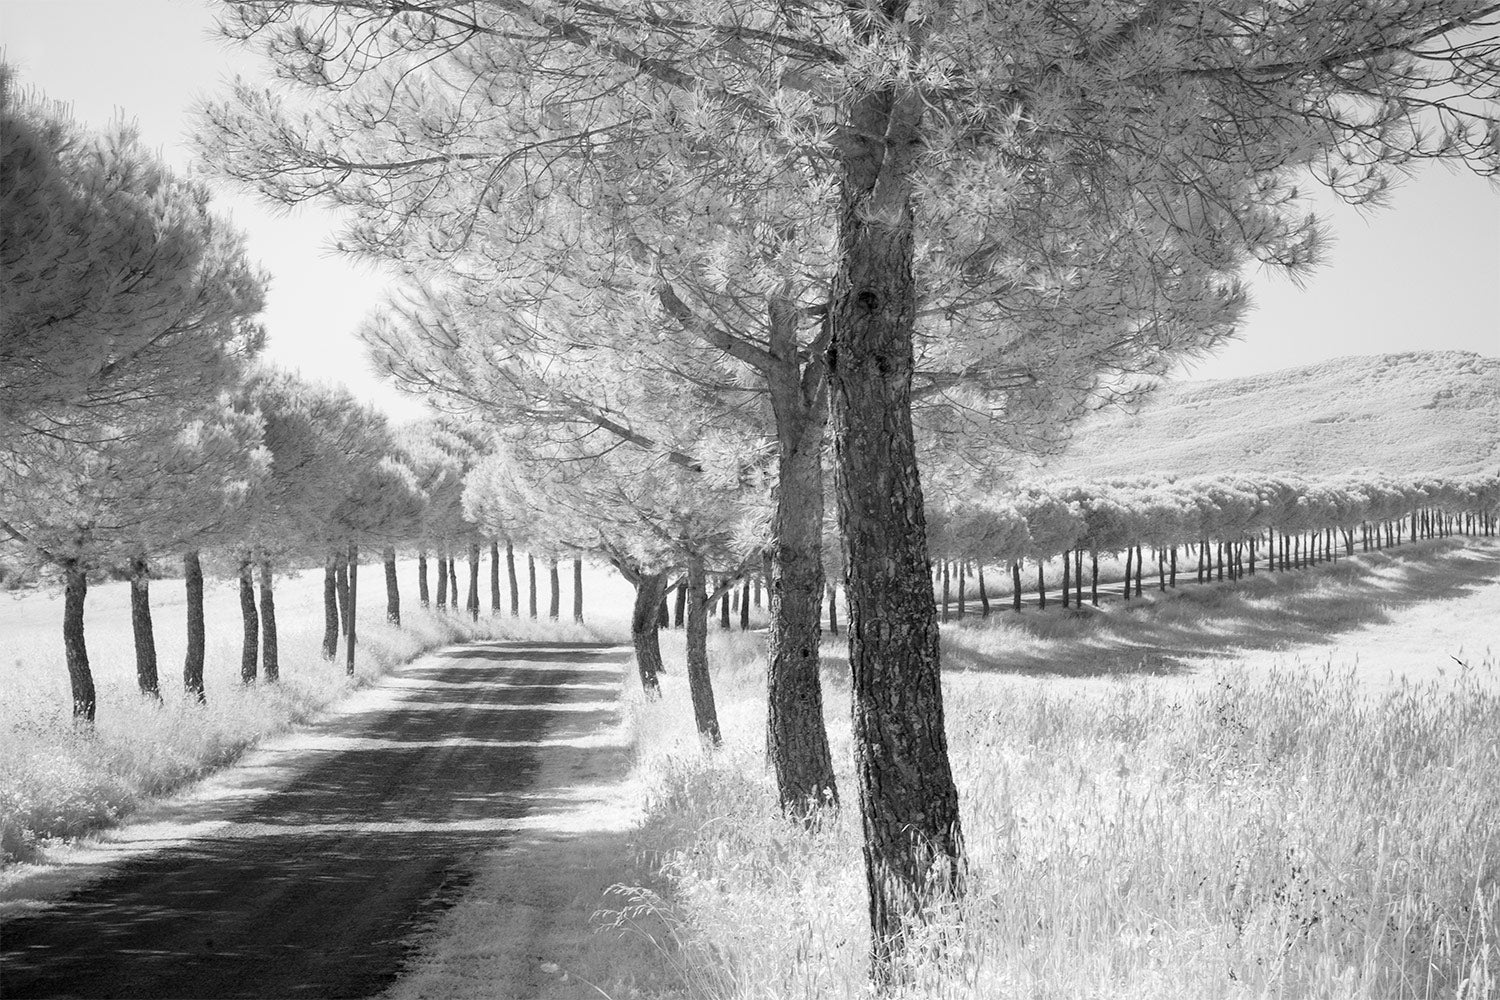 A black and white image of an Avenue of Trees either side of the road through the rolling Italian countryside.